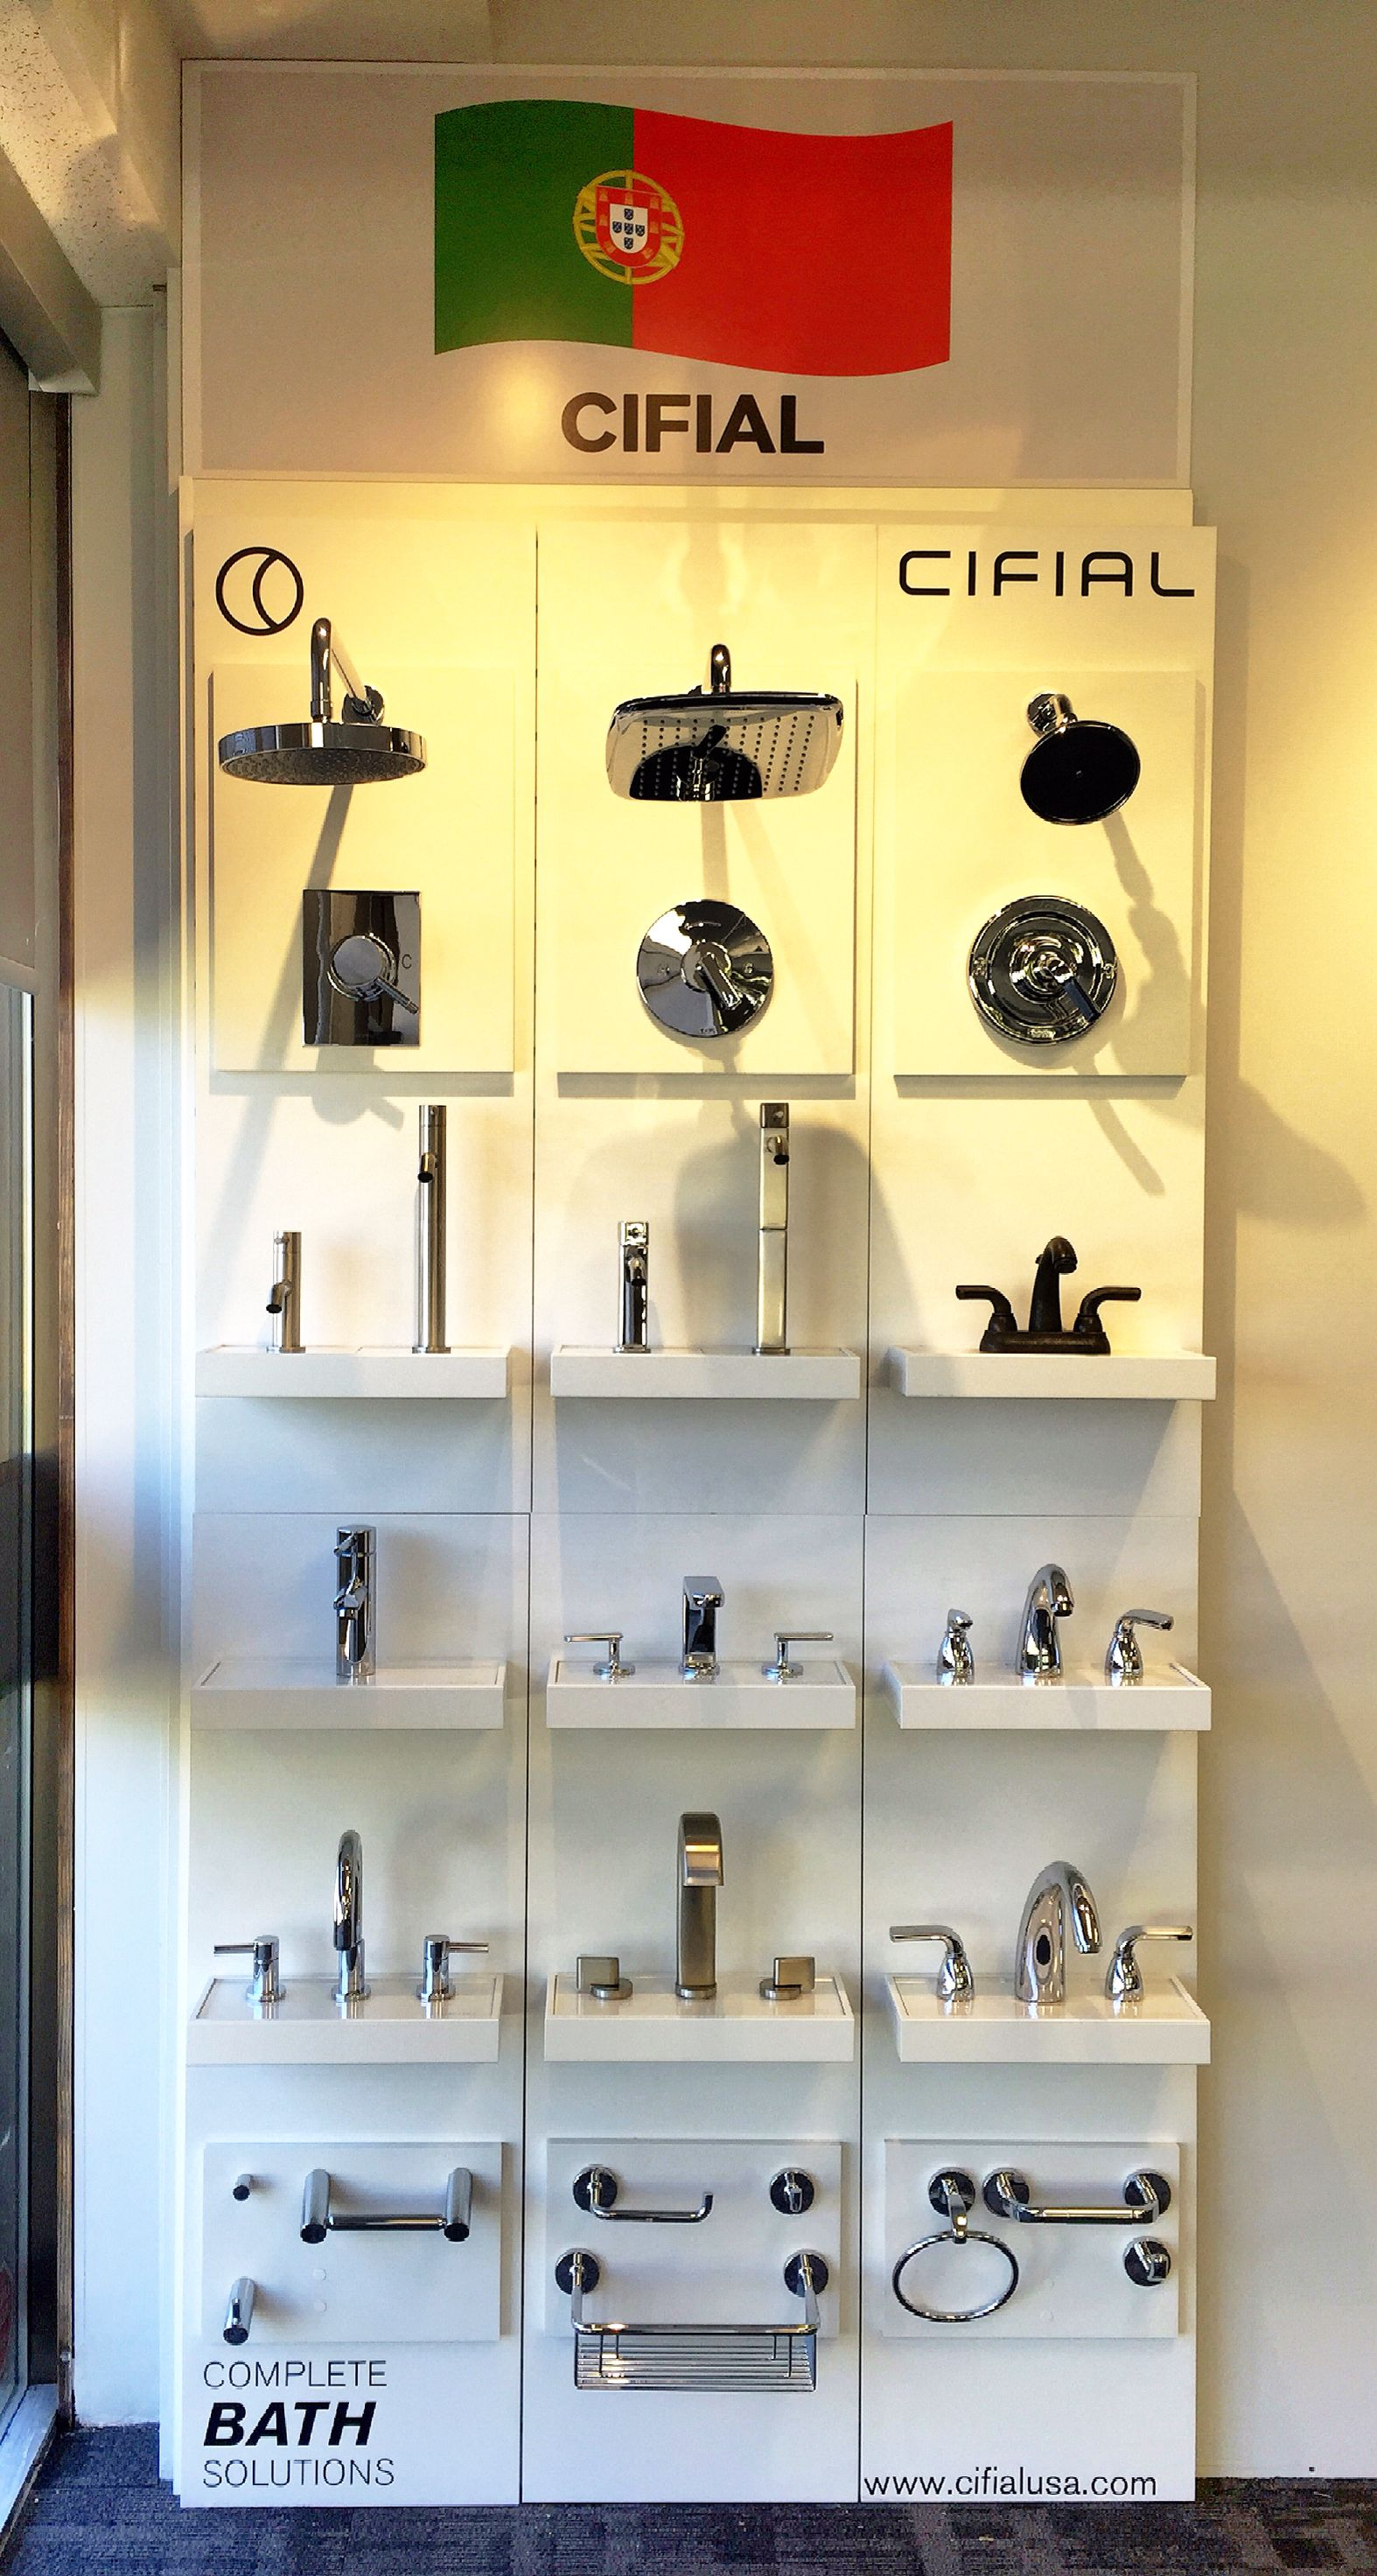 #cifial #display #faucet #boards Wall Happy Easy #installation #